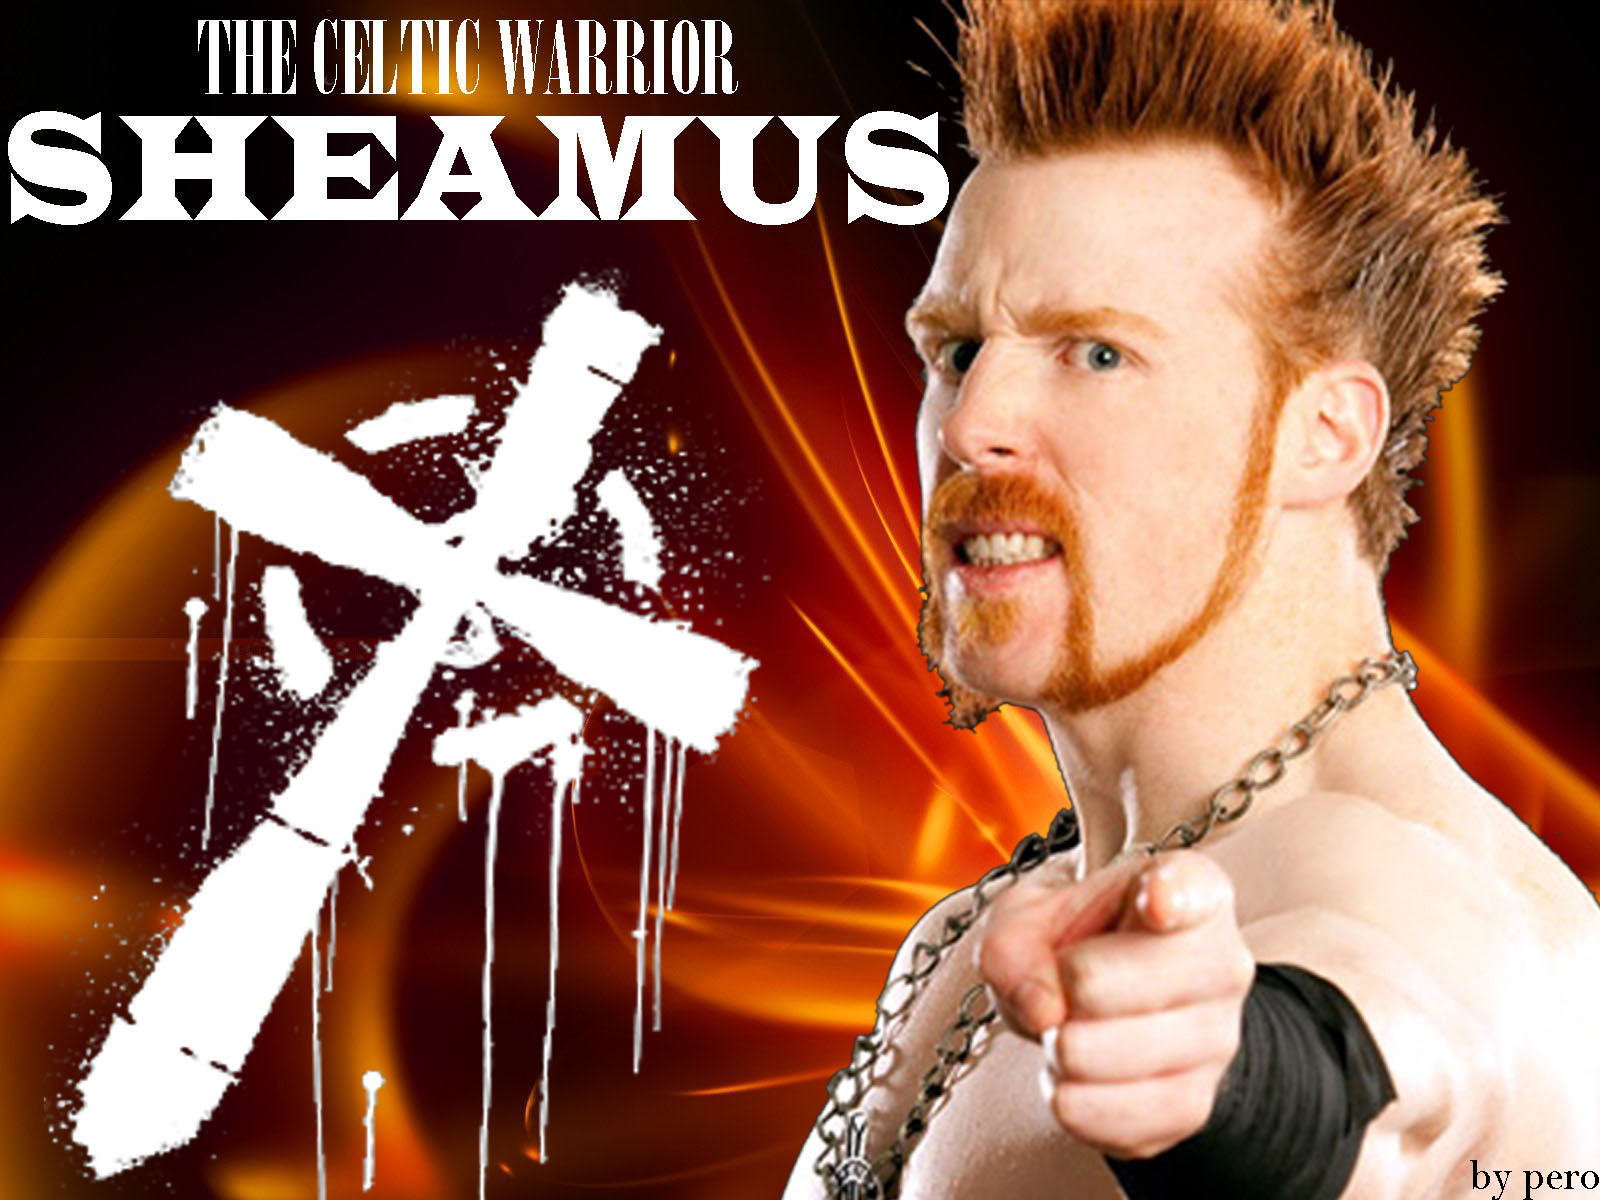 http://images4.fanpop.com/image/photos/20900000/sheamus-exclusive-fanpop-sheamus-20984114-1600-1200.jpg